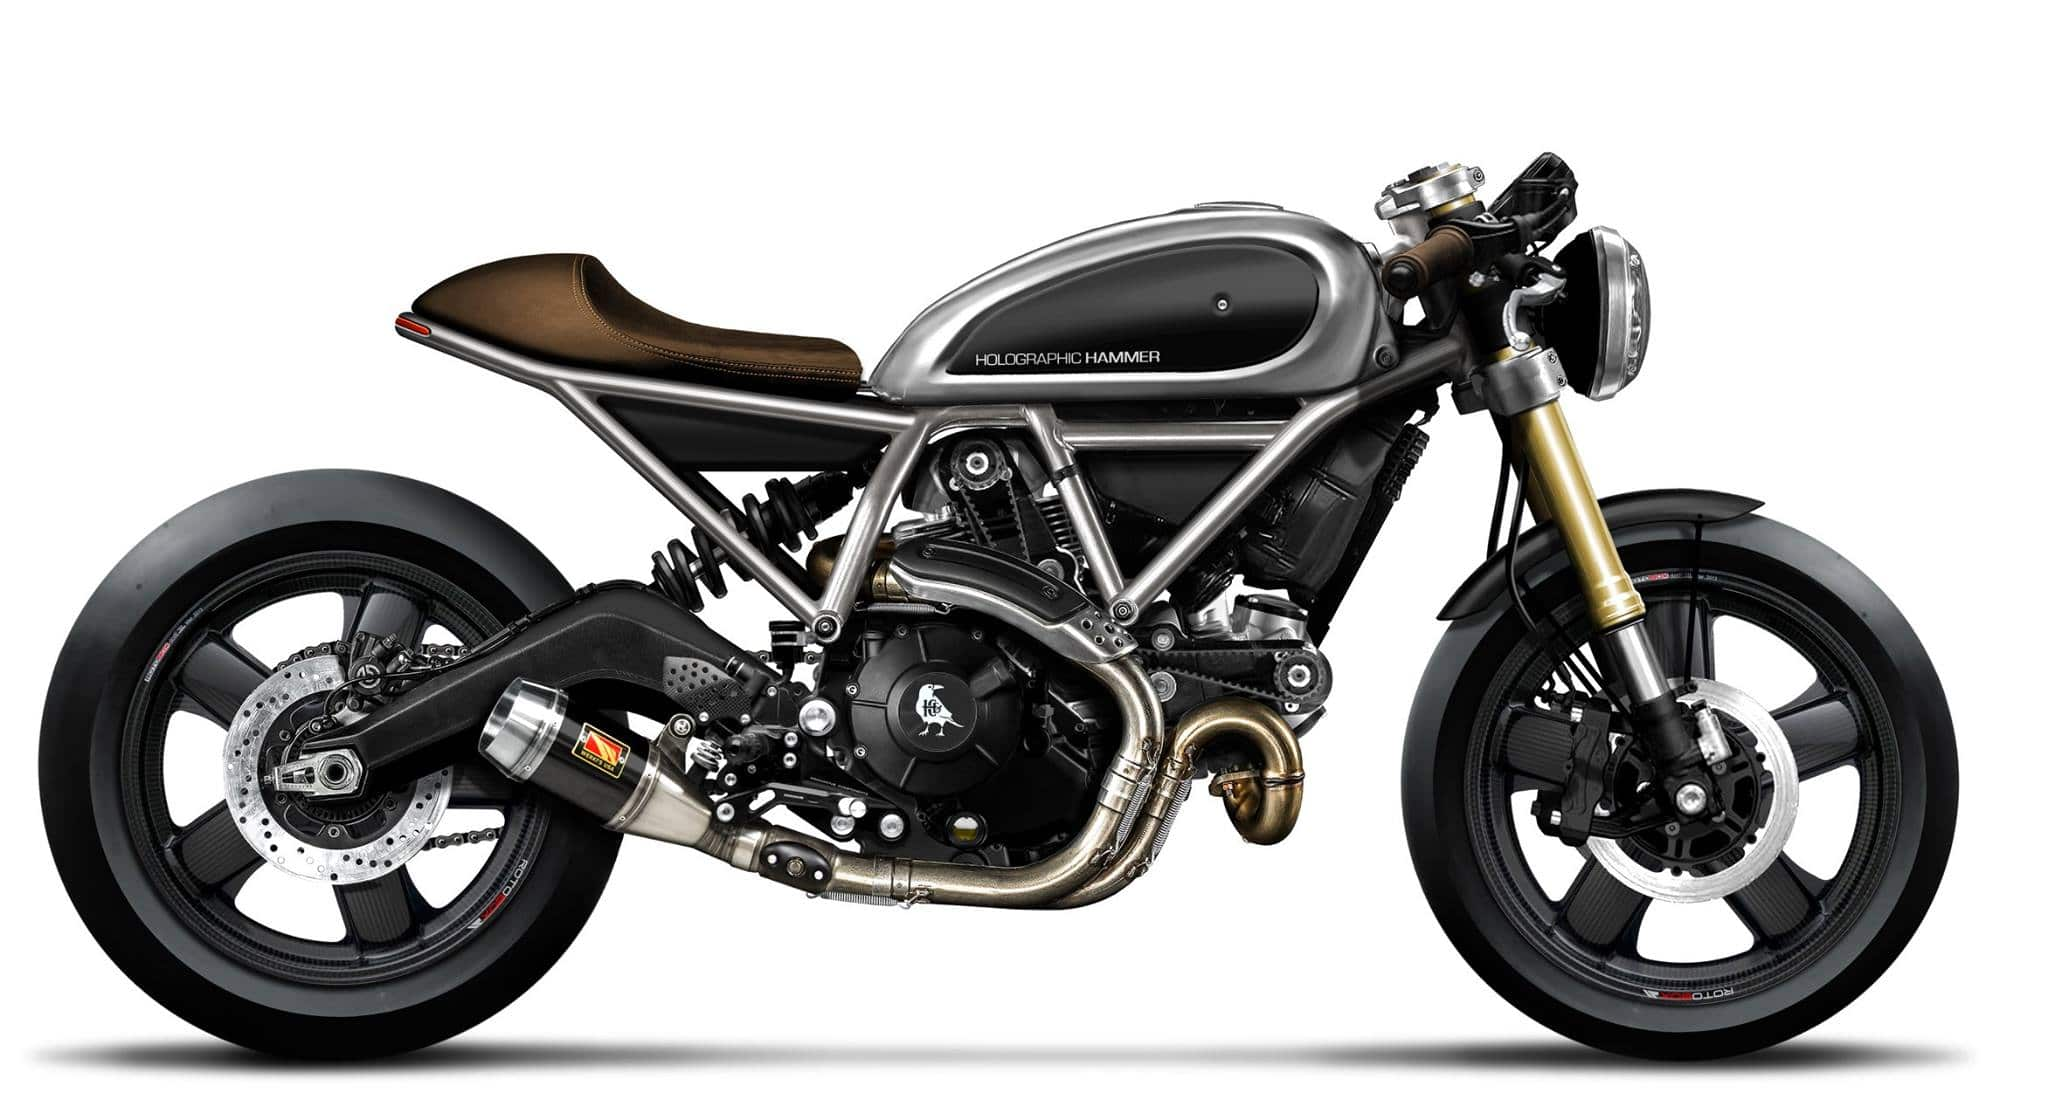 new ducati scramblers and multistrada coming in 2017 | find new